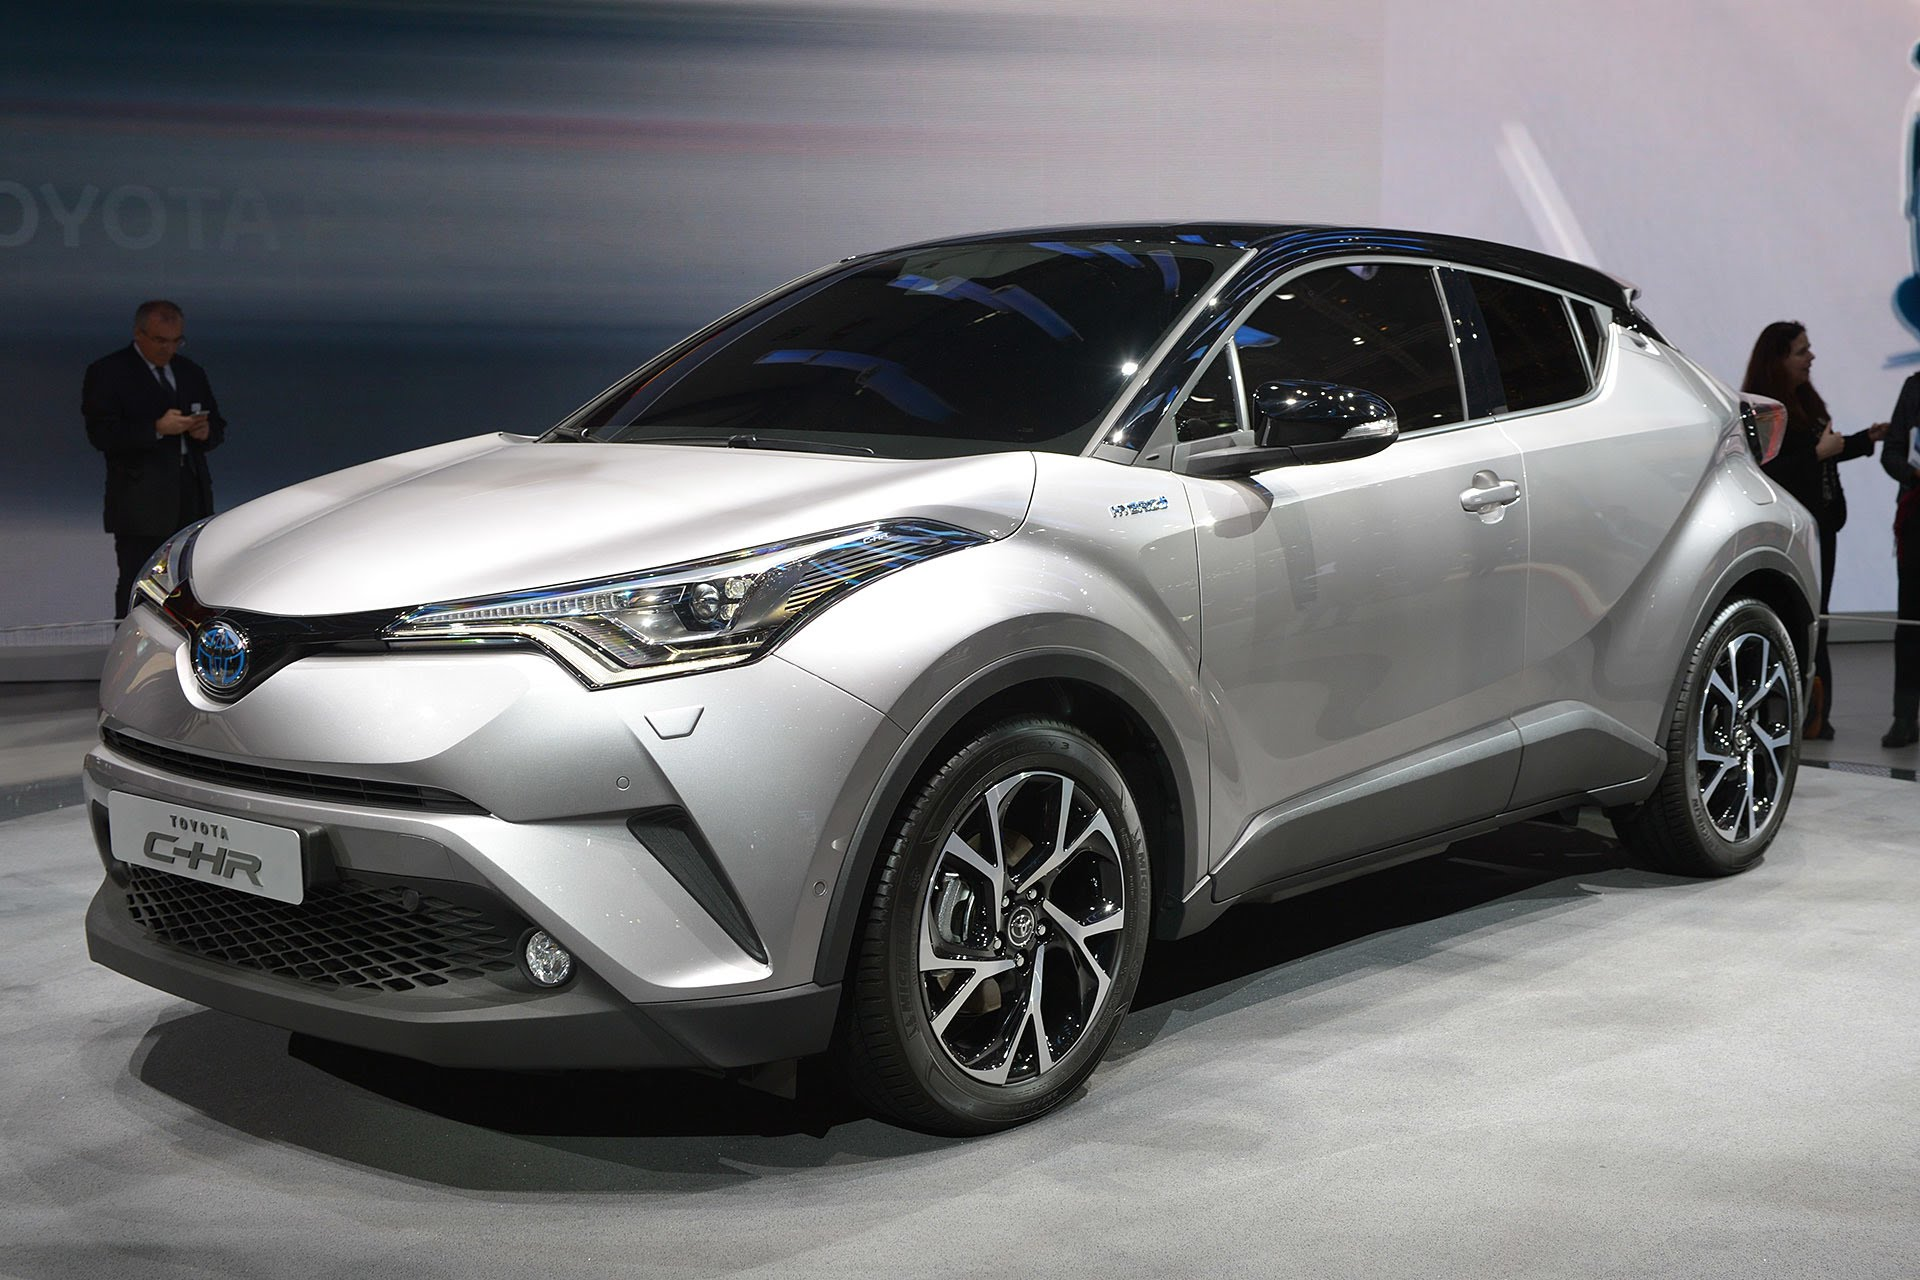 Toyota C-HR Desktop wallpapers